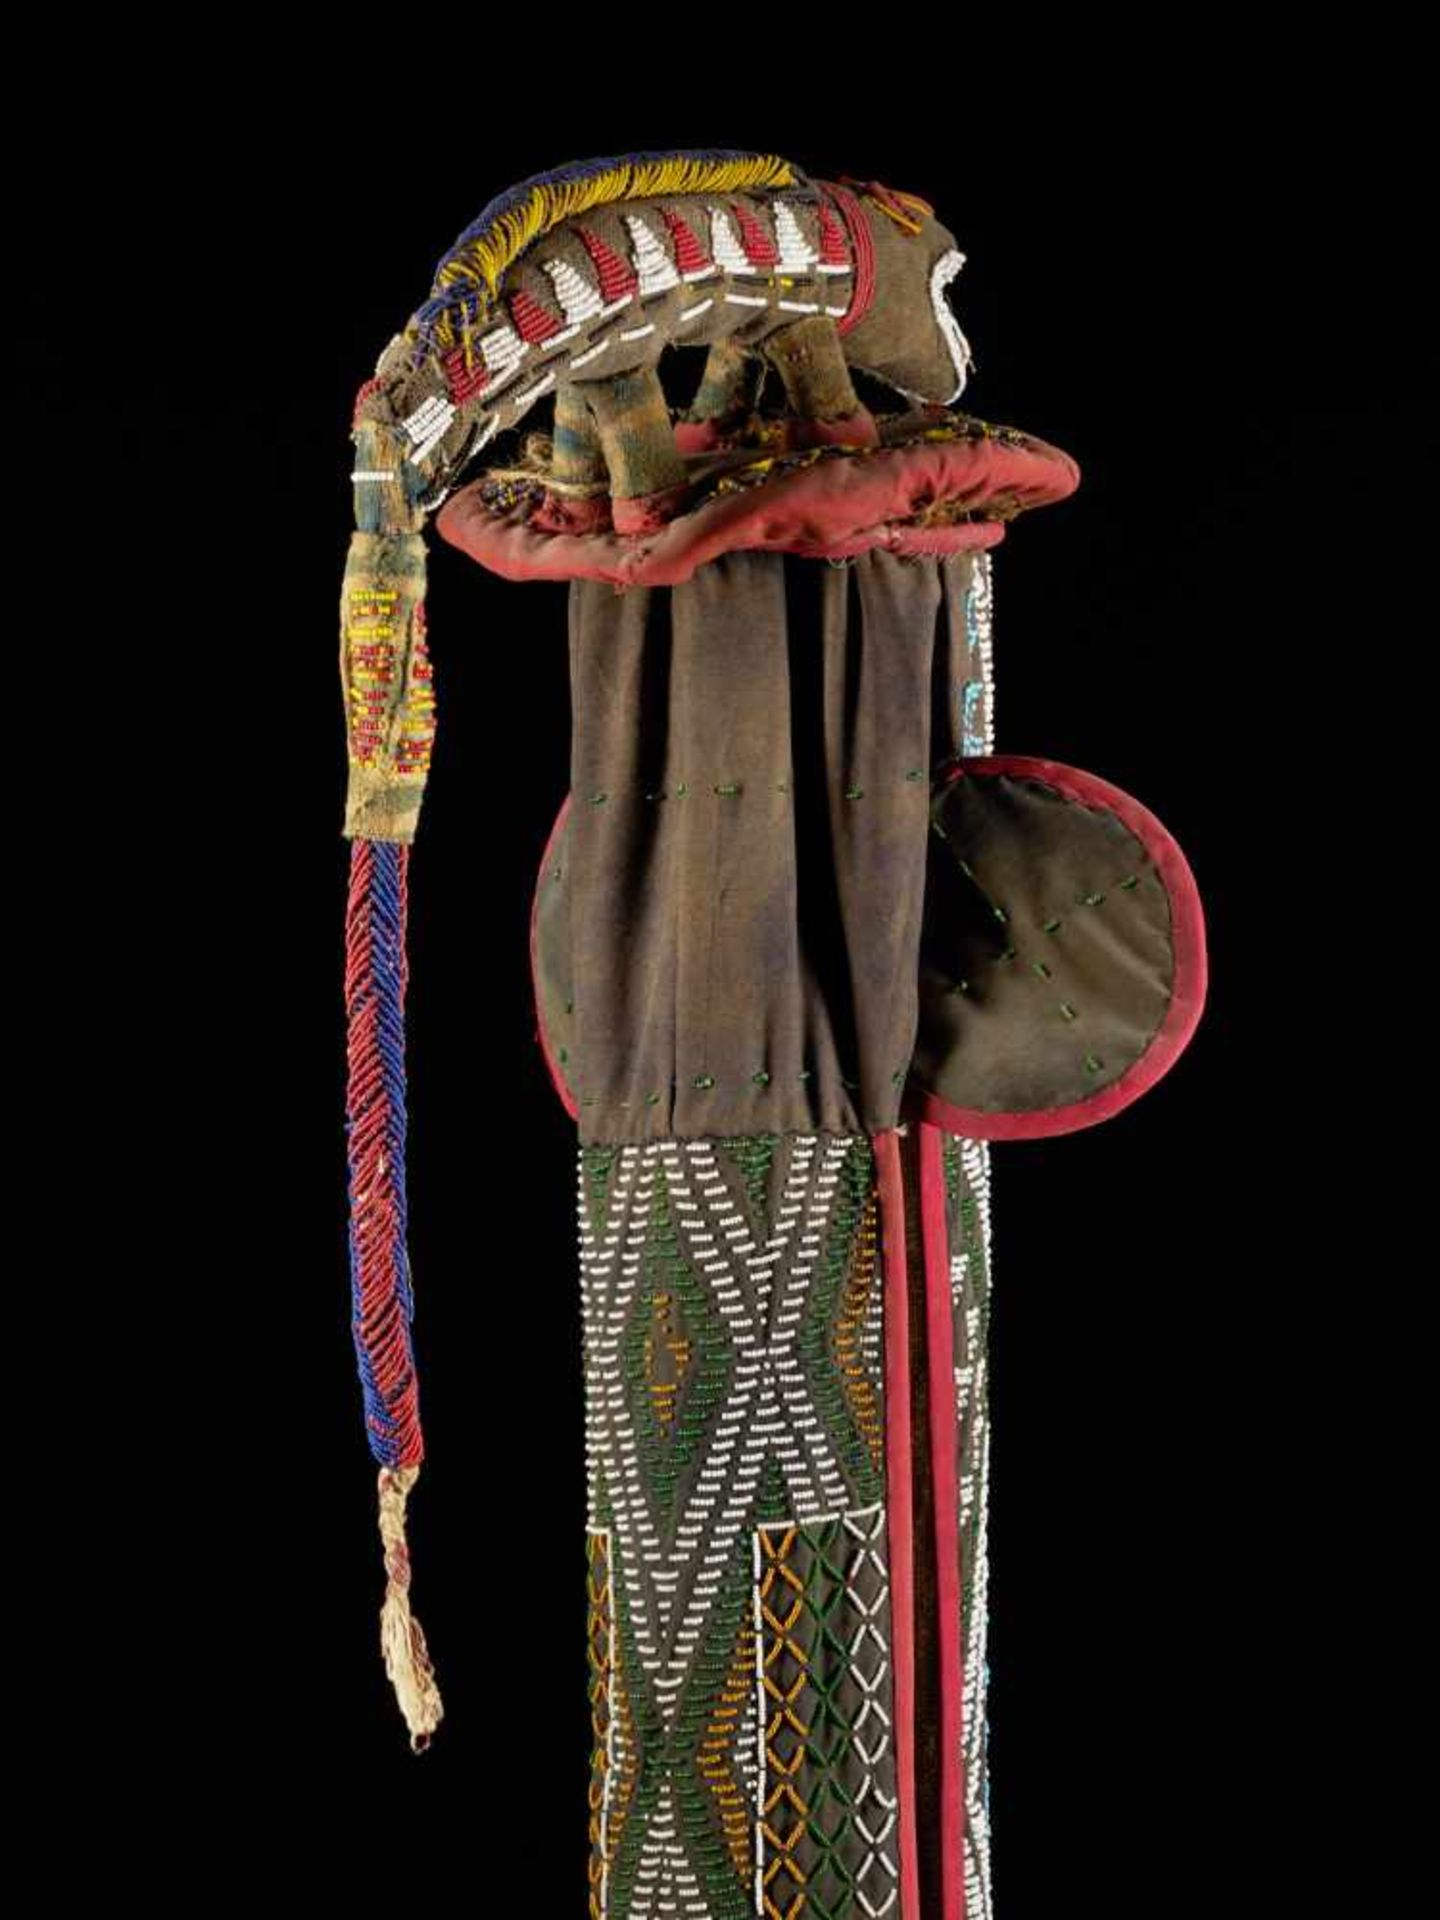 Beaded Kuosi Elephant Mask Topped With Leopard Figure - Tribal ArtThis elephant mask is - Bild 8 aus 15